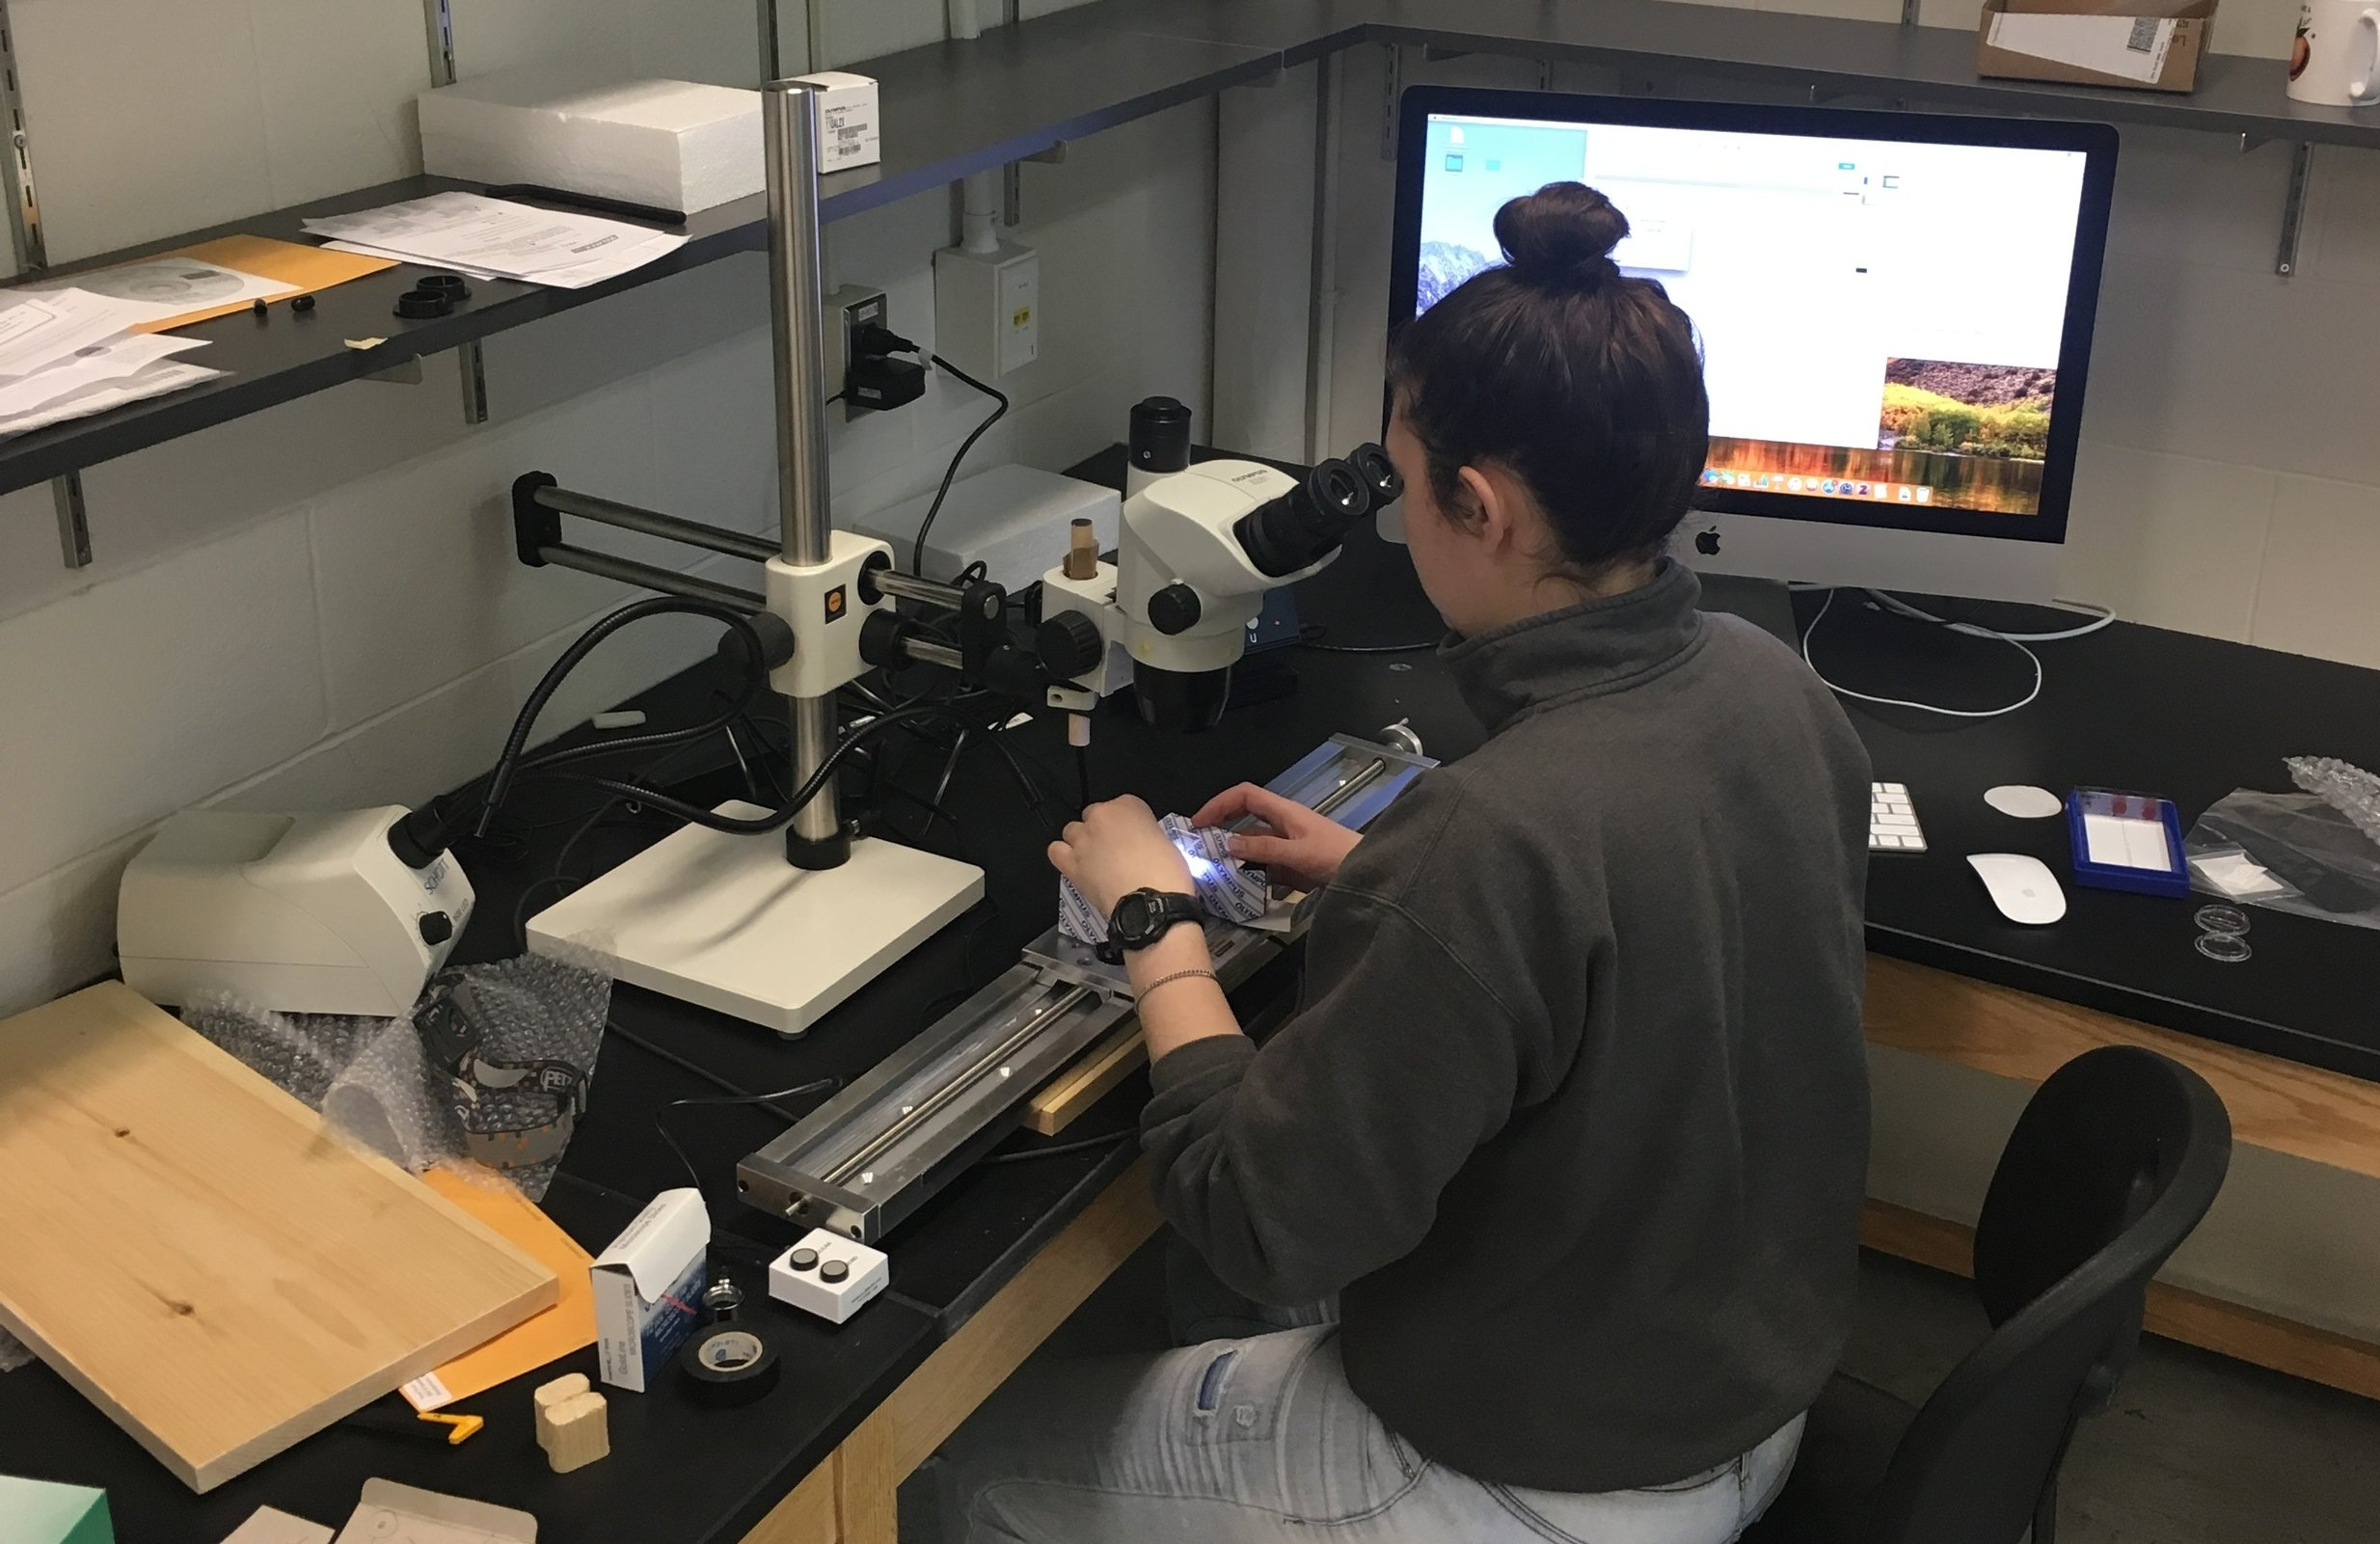 Sara Bohnert - Former co-op student (Winter 2018)During her semester in the lab, Sara did everything from microtoming shrub samples to research passenger pigeon. Hopefully one day she will be up here again as a MES/PhD student..